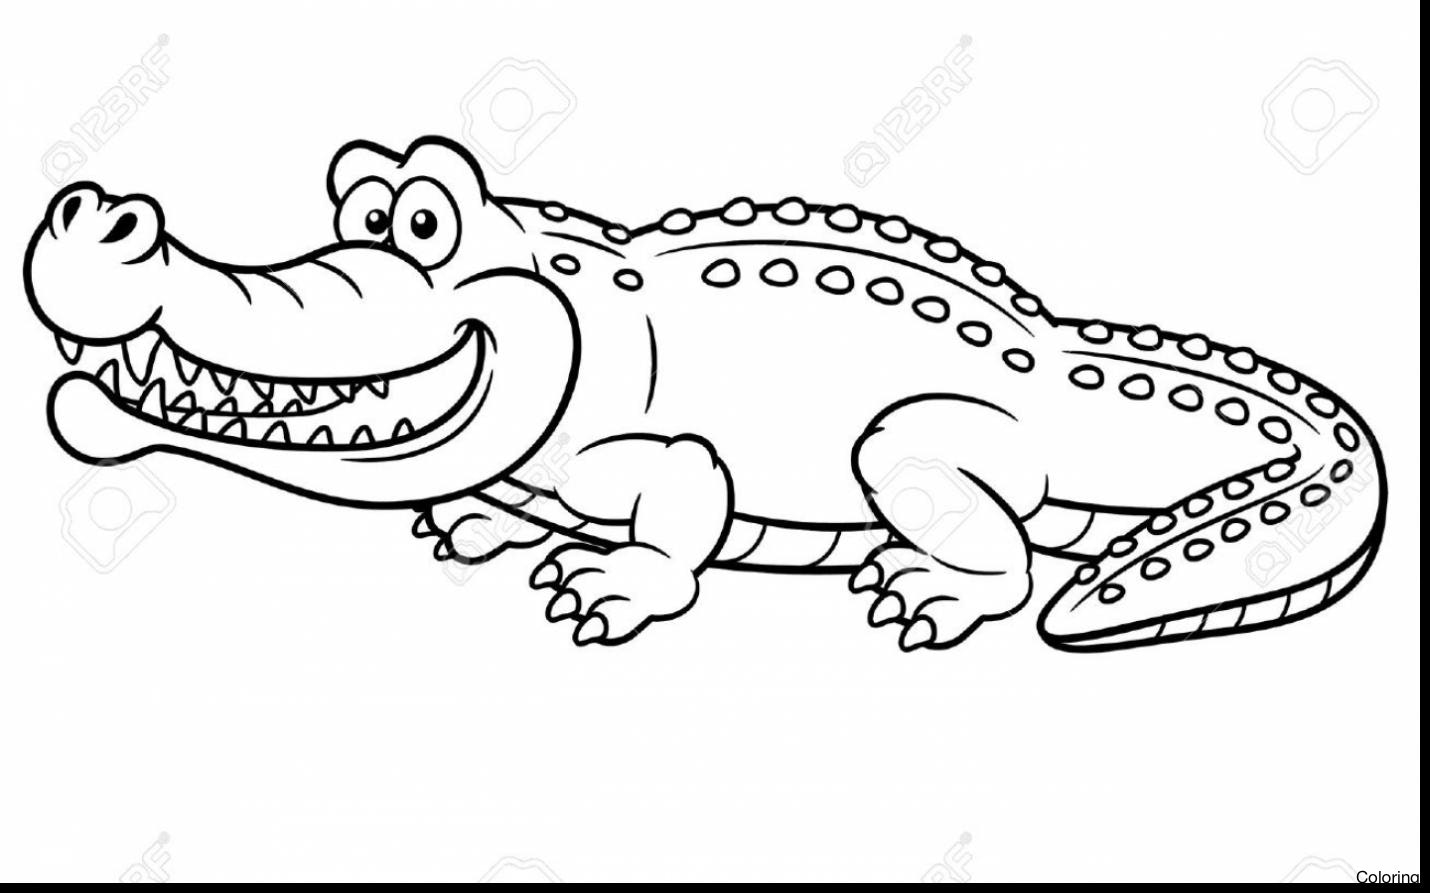 Crocodile Drawing For Kids at GetDrawings.com | Free for personal ...